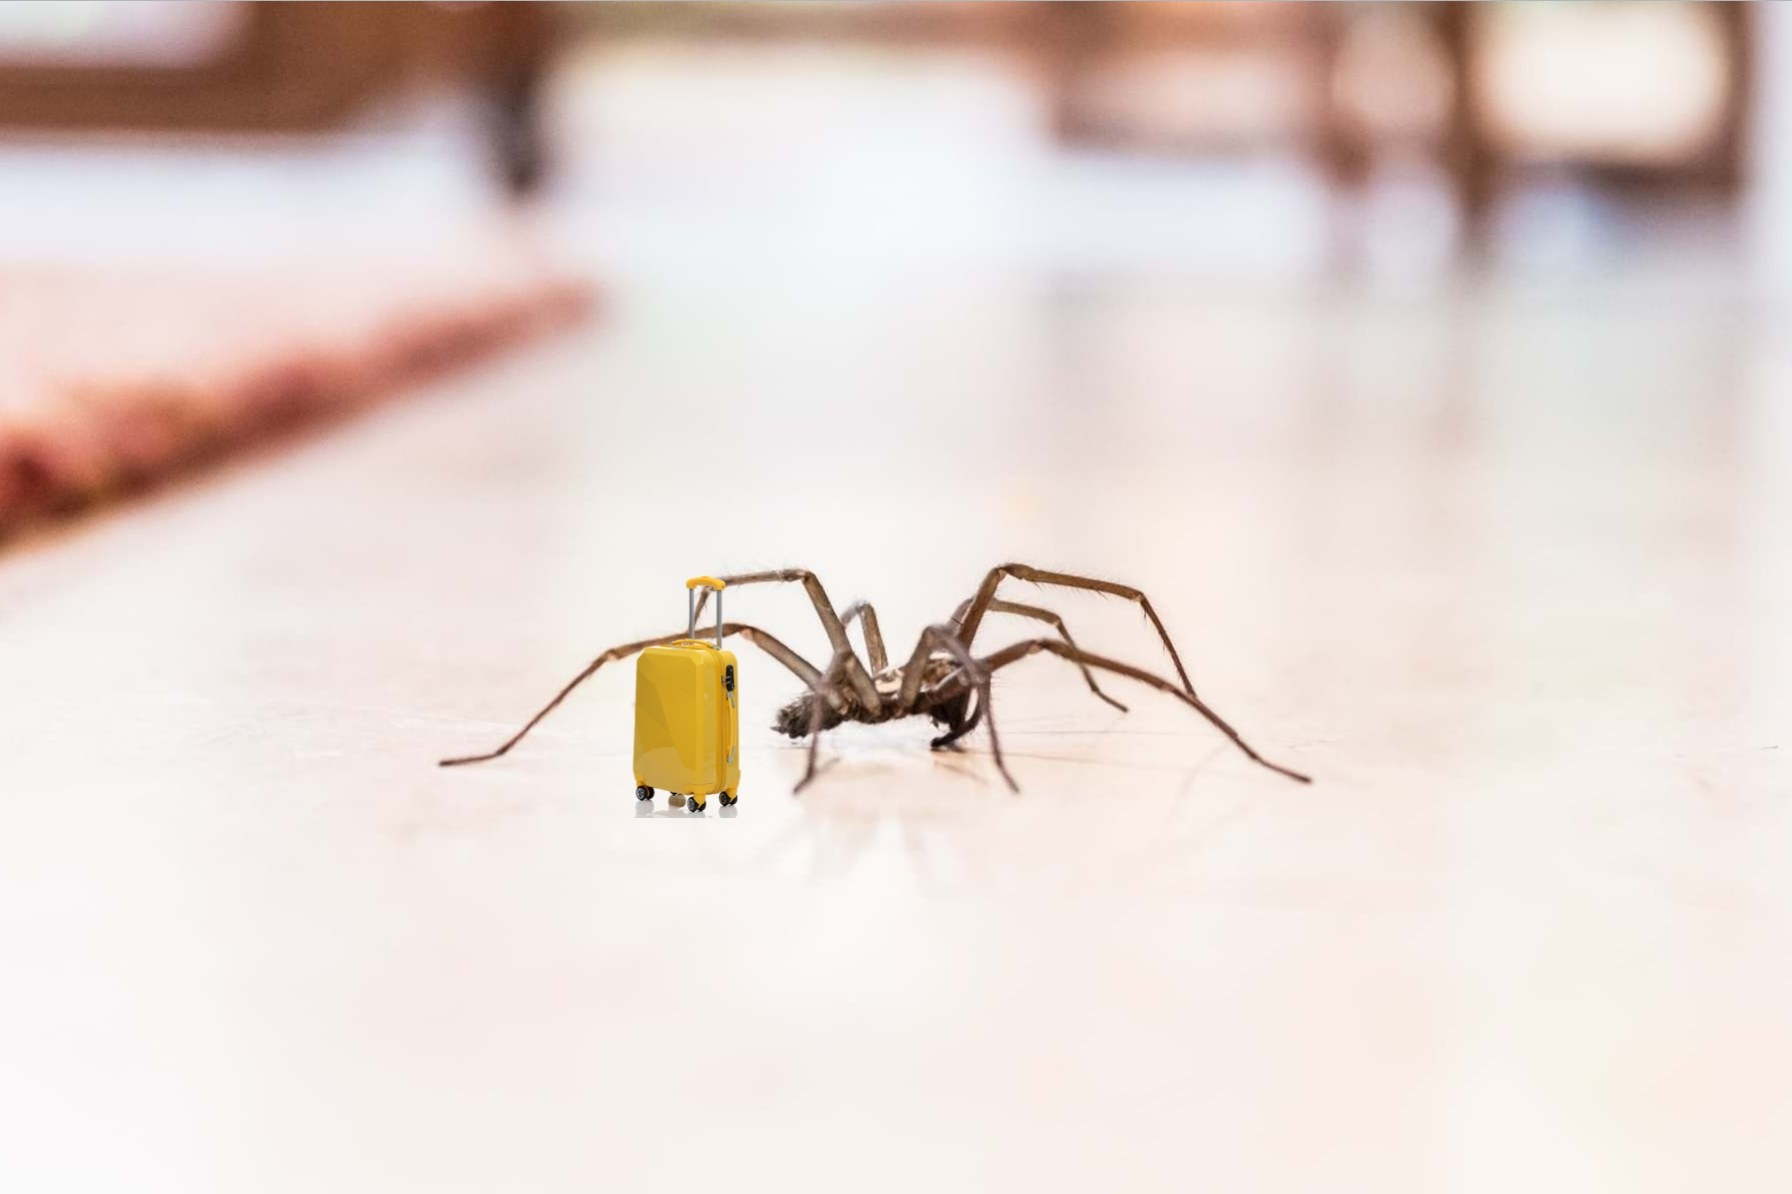 Spider crawling with suitcase